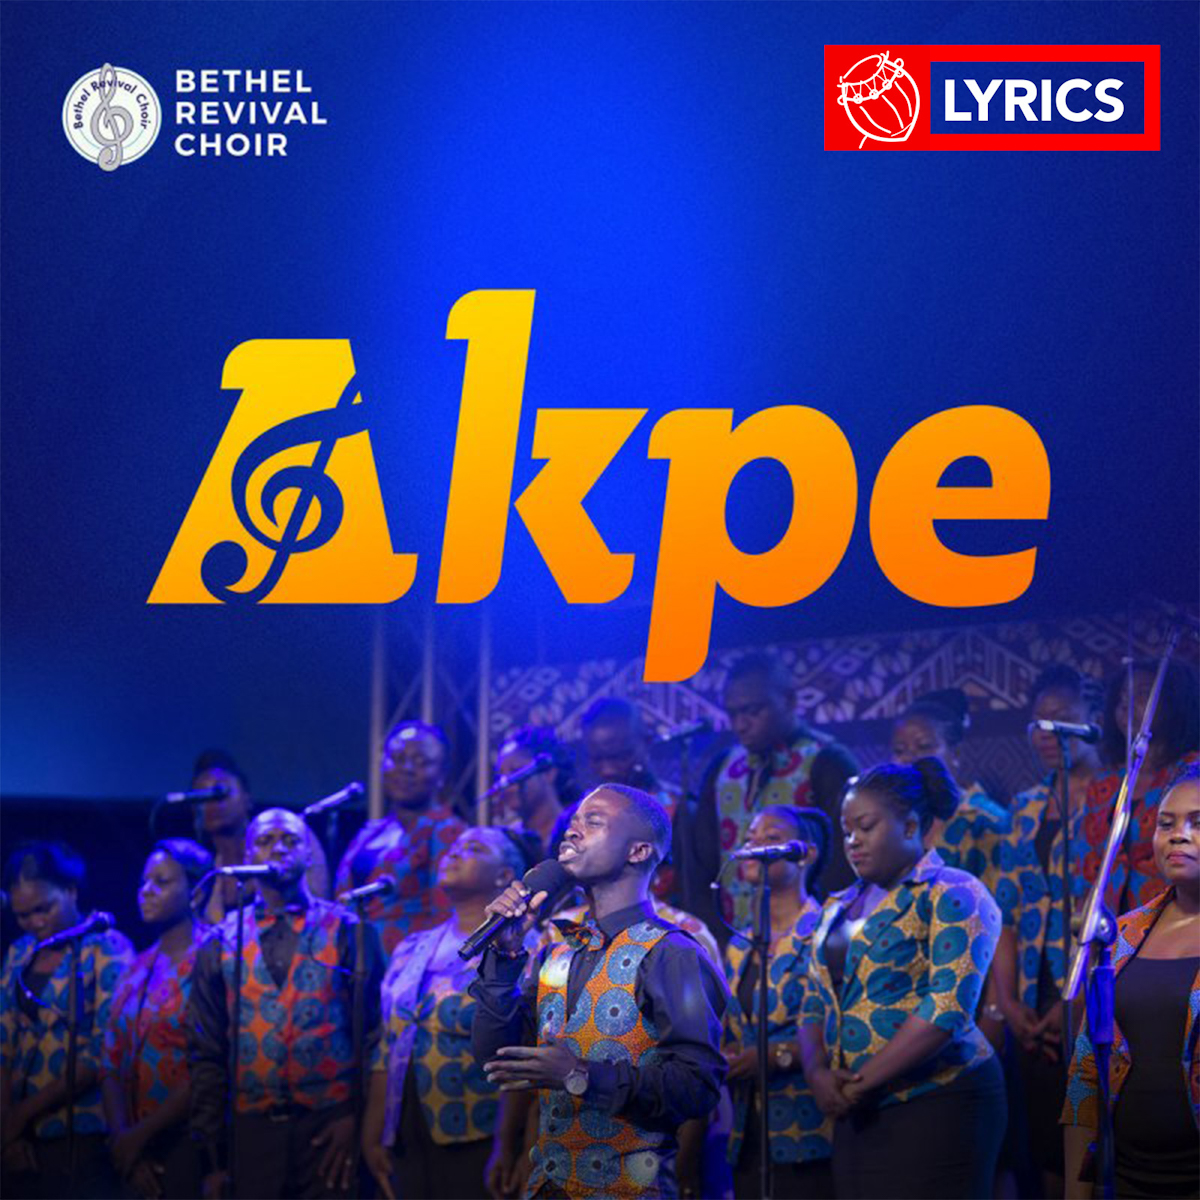 Lyrics: Mawu Gbagbe by Bethel Revival Choir feat. Joe Mettle